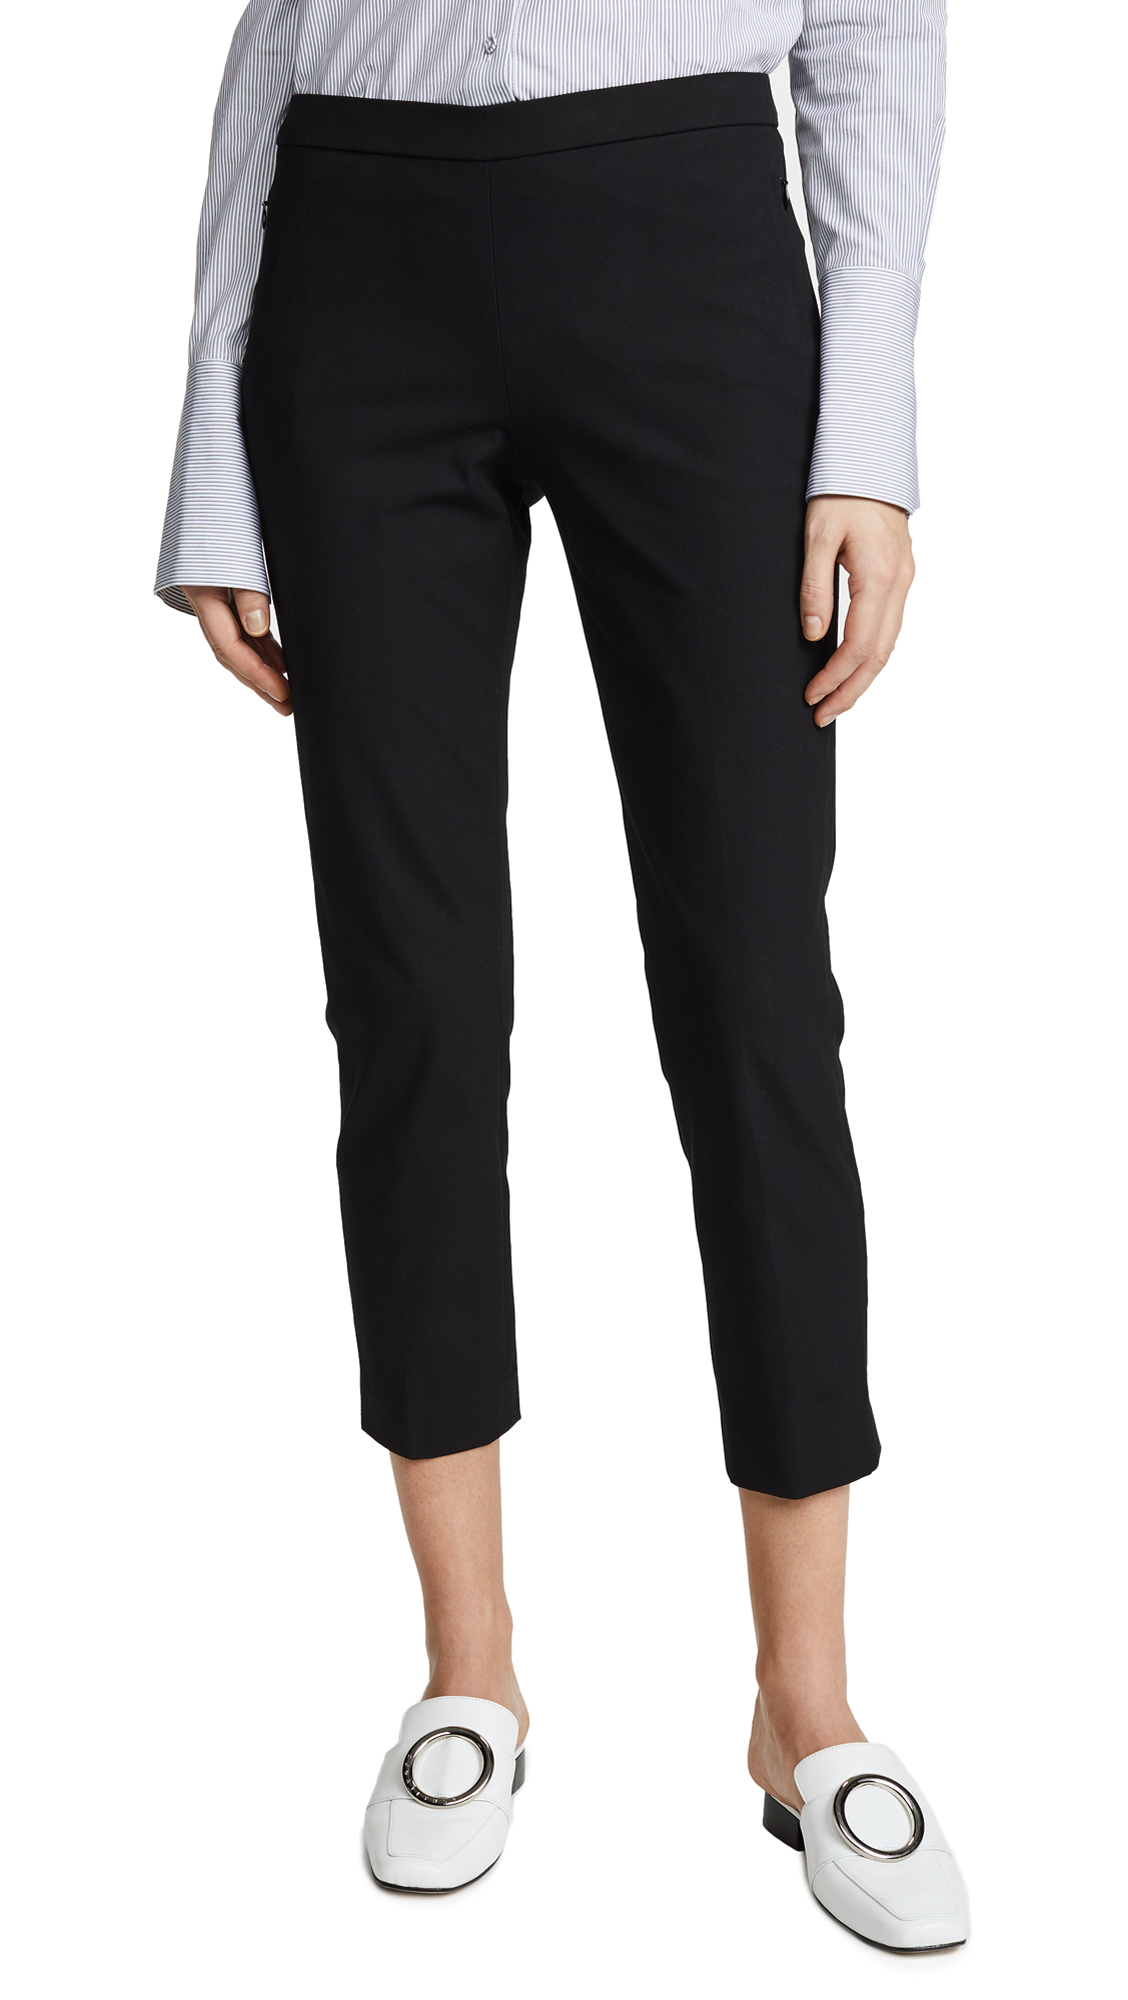 Organic Crunch Basic Pull-On Pants in Black